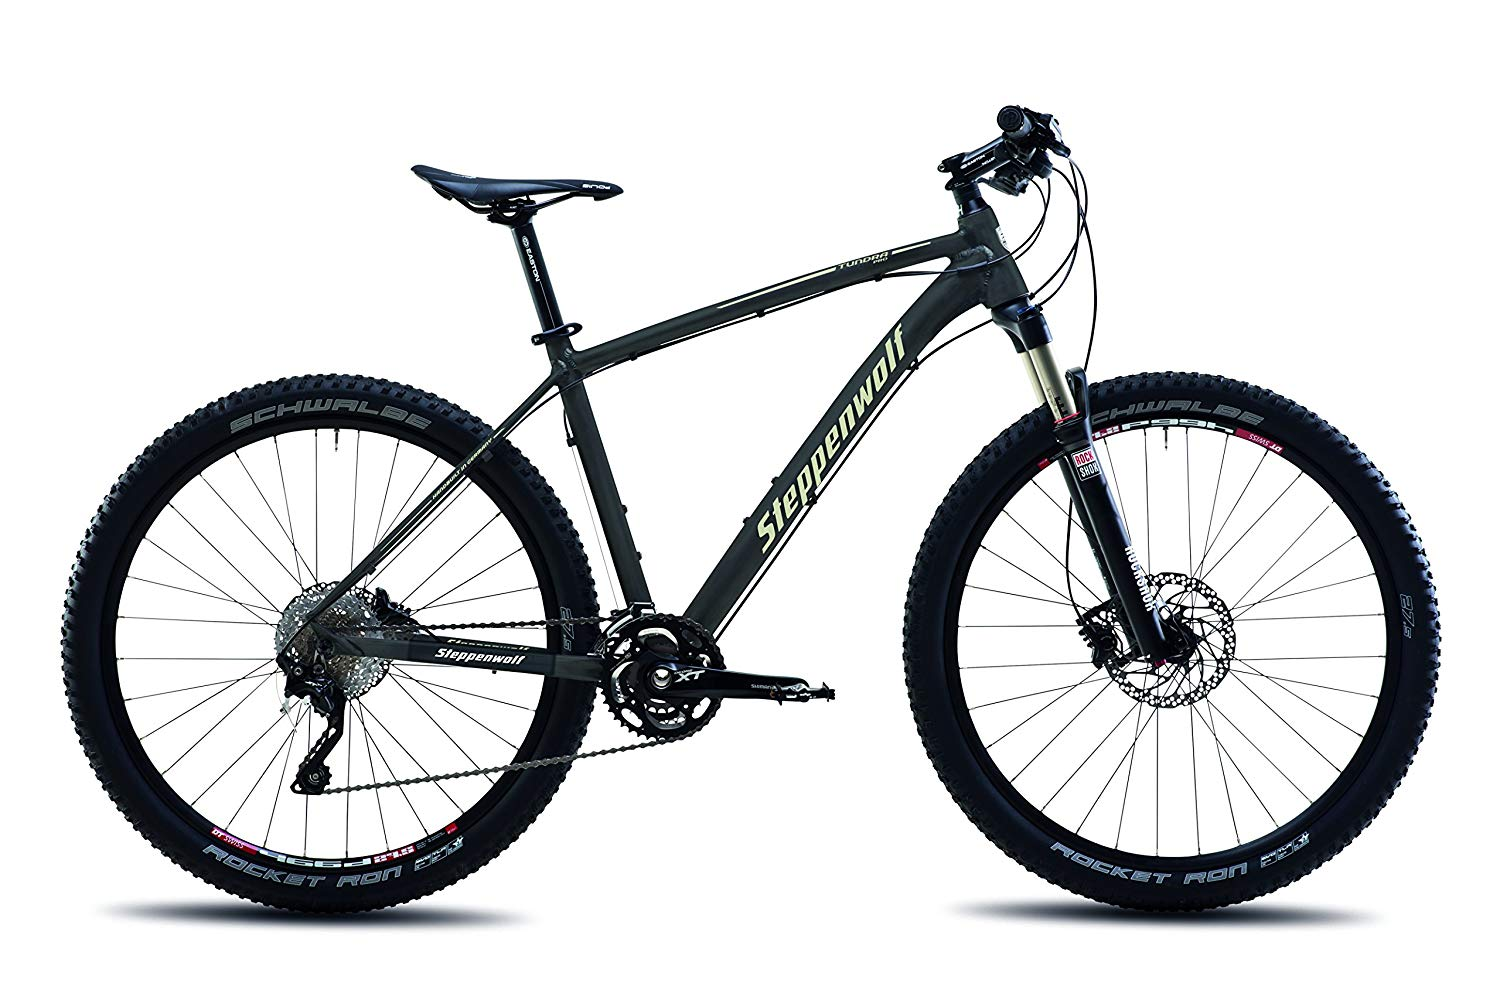 Weight of a Carbon Mountain Bike vs. Aluminum: Image of Steppenwolf high-speed downhill